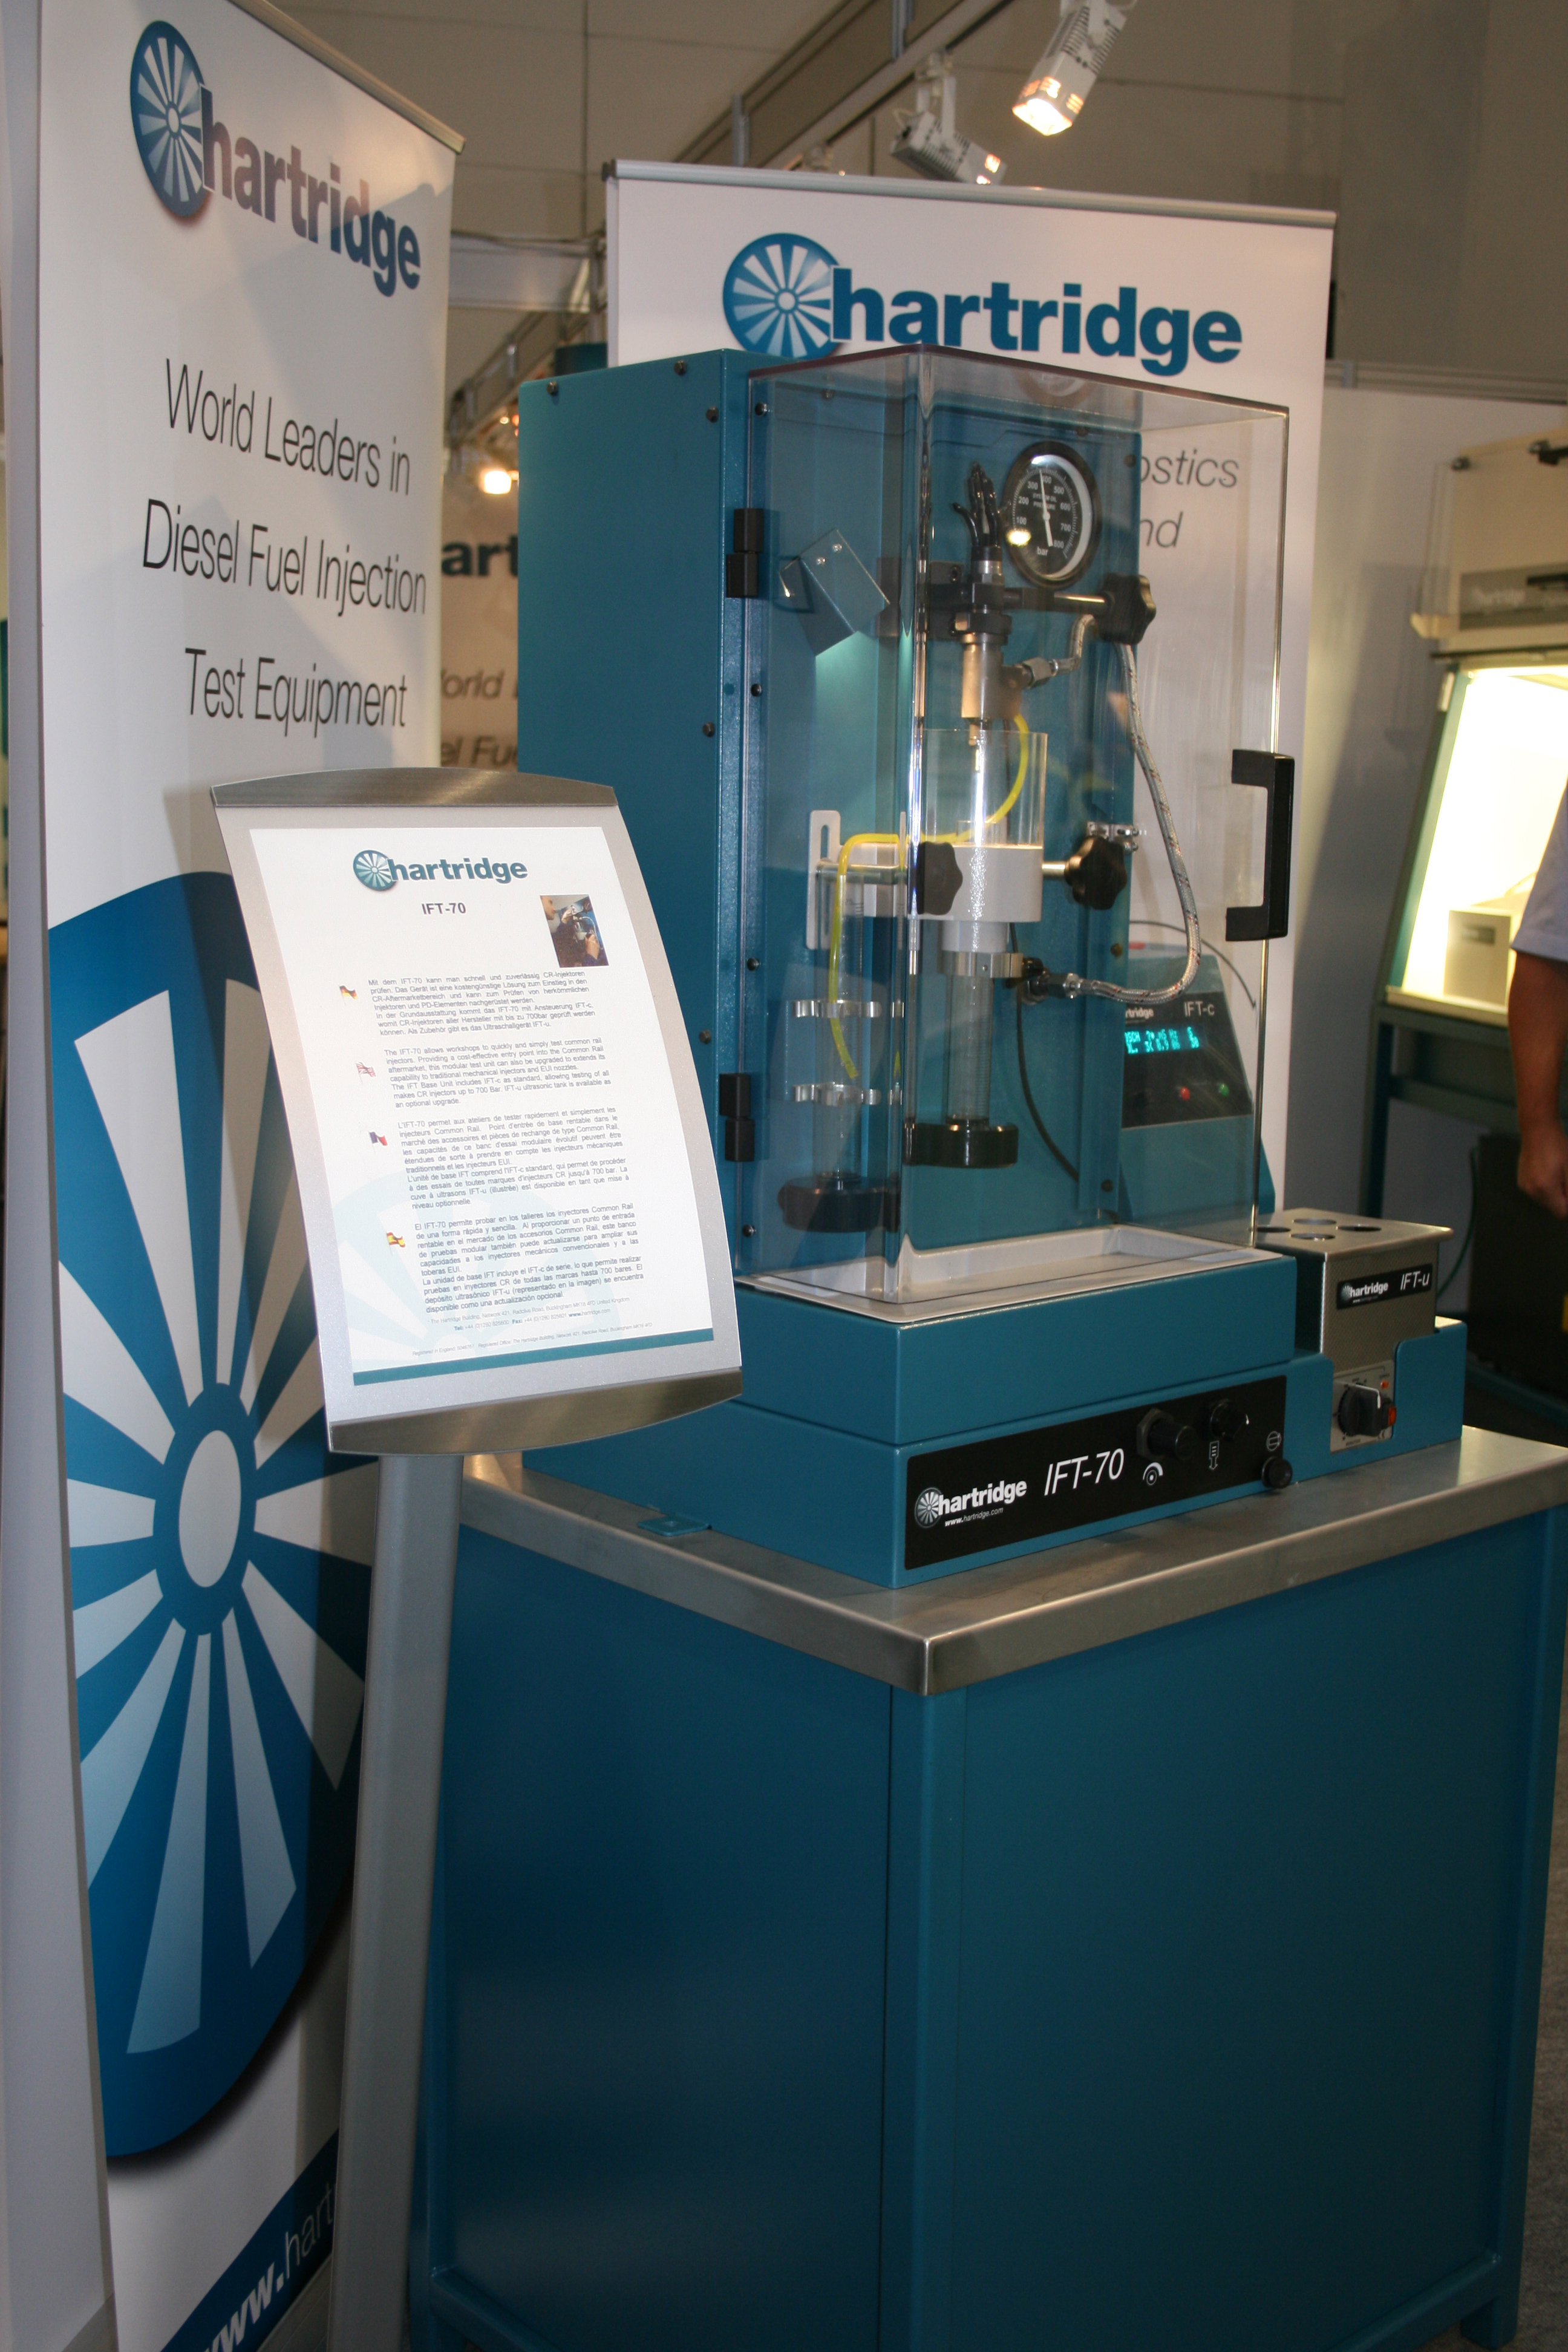 Image of the IFT-70 at the Frankfurt exhibition